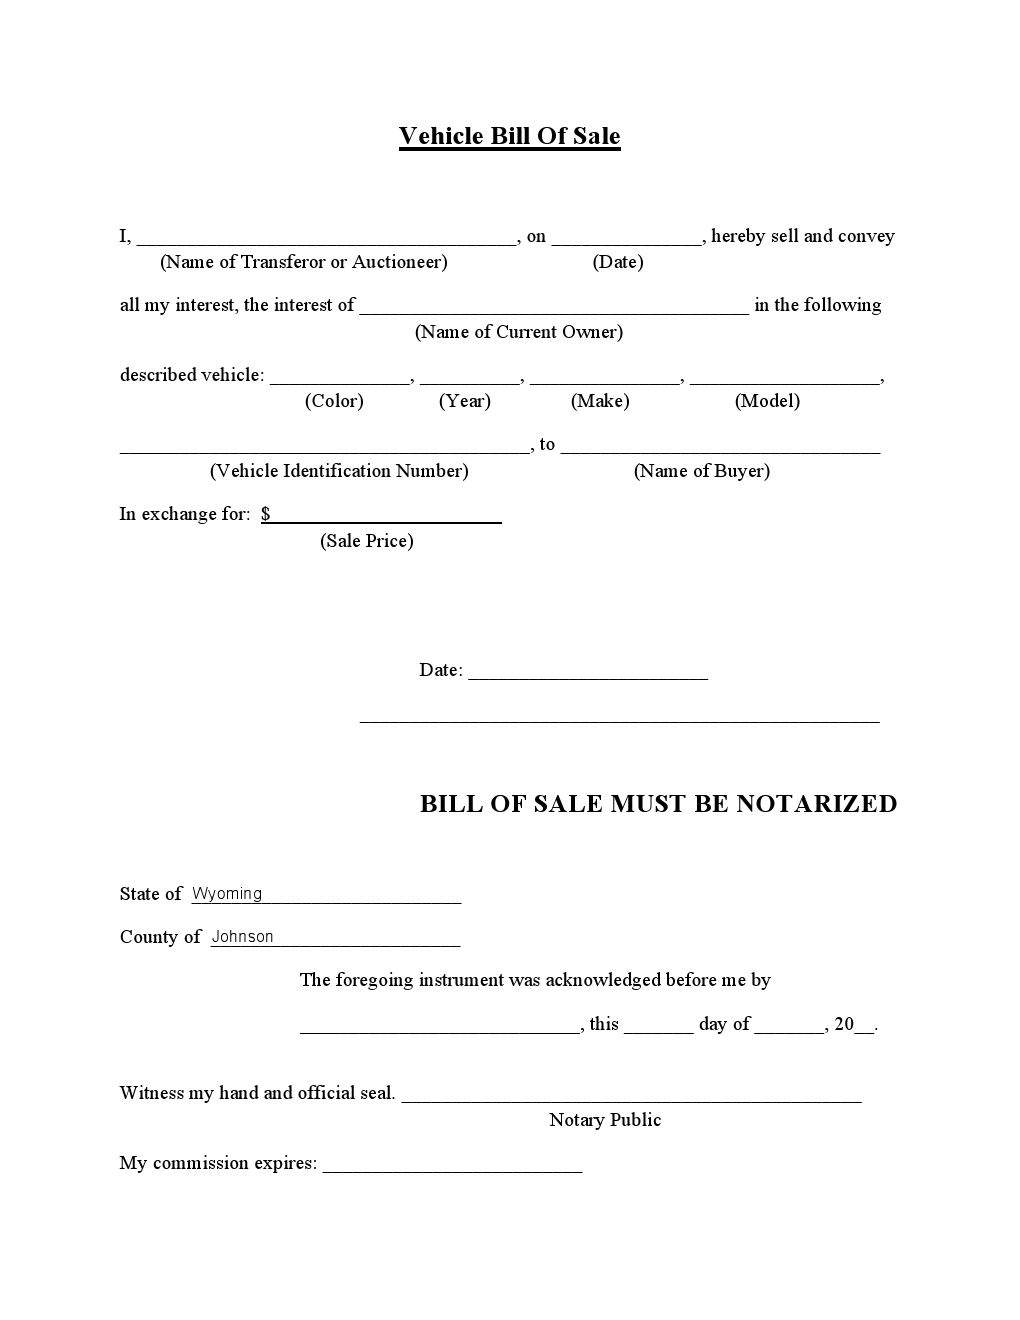 Free Johnson Country Vehicle Bill Of Sale Form Download Pdf Word .